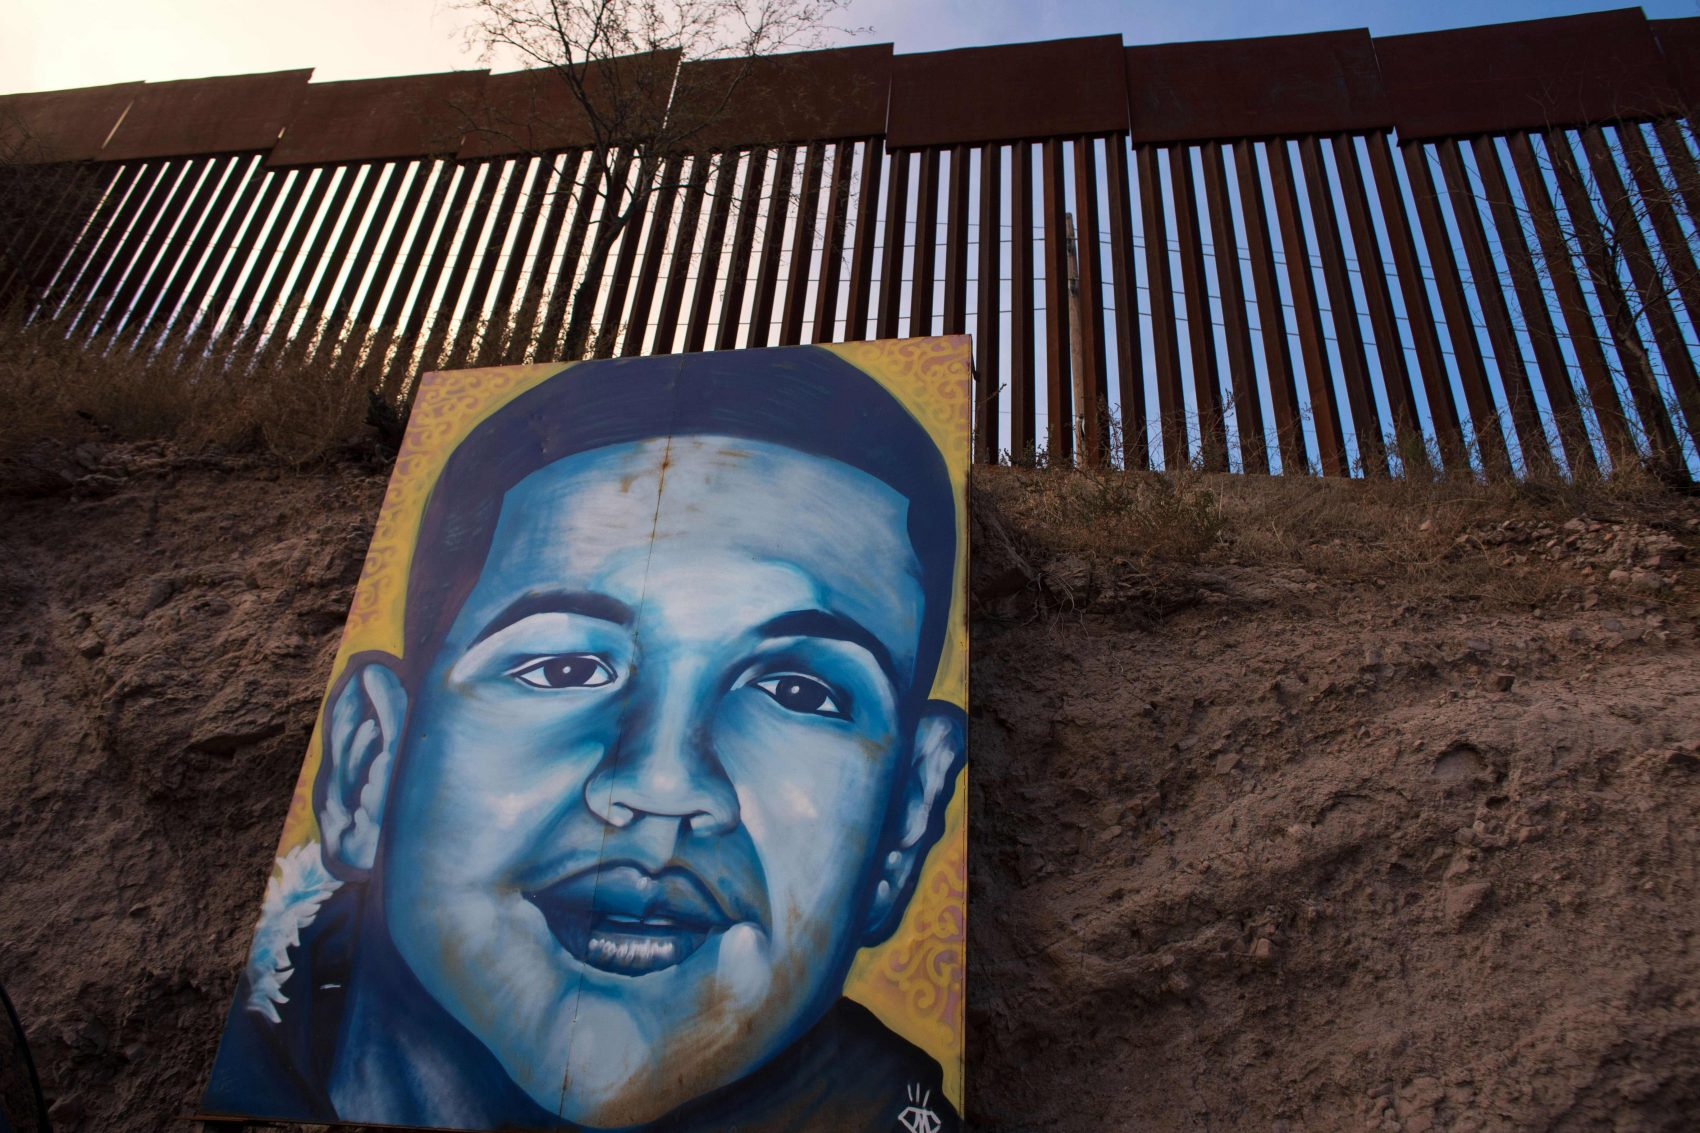 A portrait of Jose Antonio Elena Rodriguez is seen on the U.S.-Mexico border fence in Nogales, Mexico, on Feb. 16, 2017. (Guillermo Arias/AFP/Getty Images)